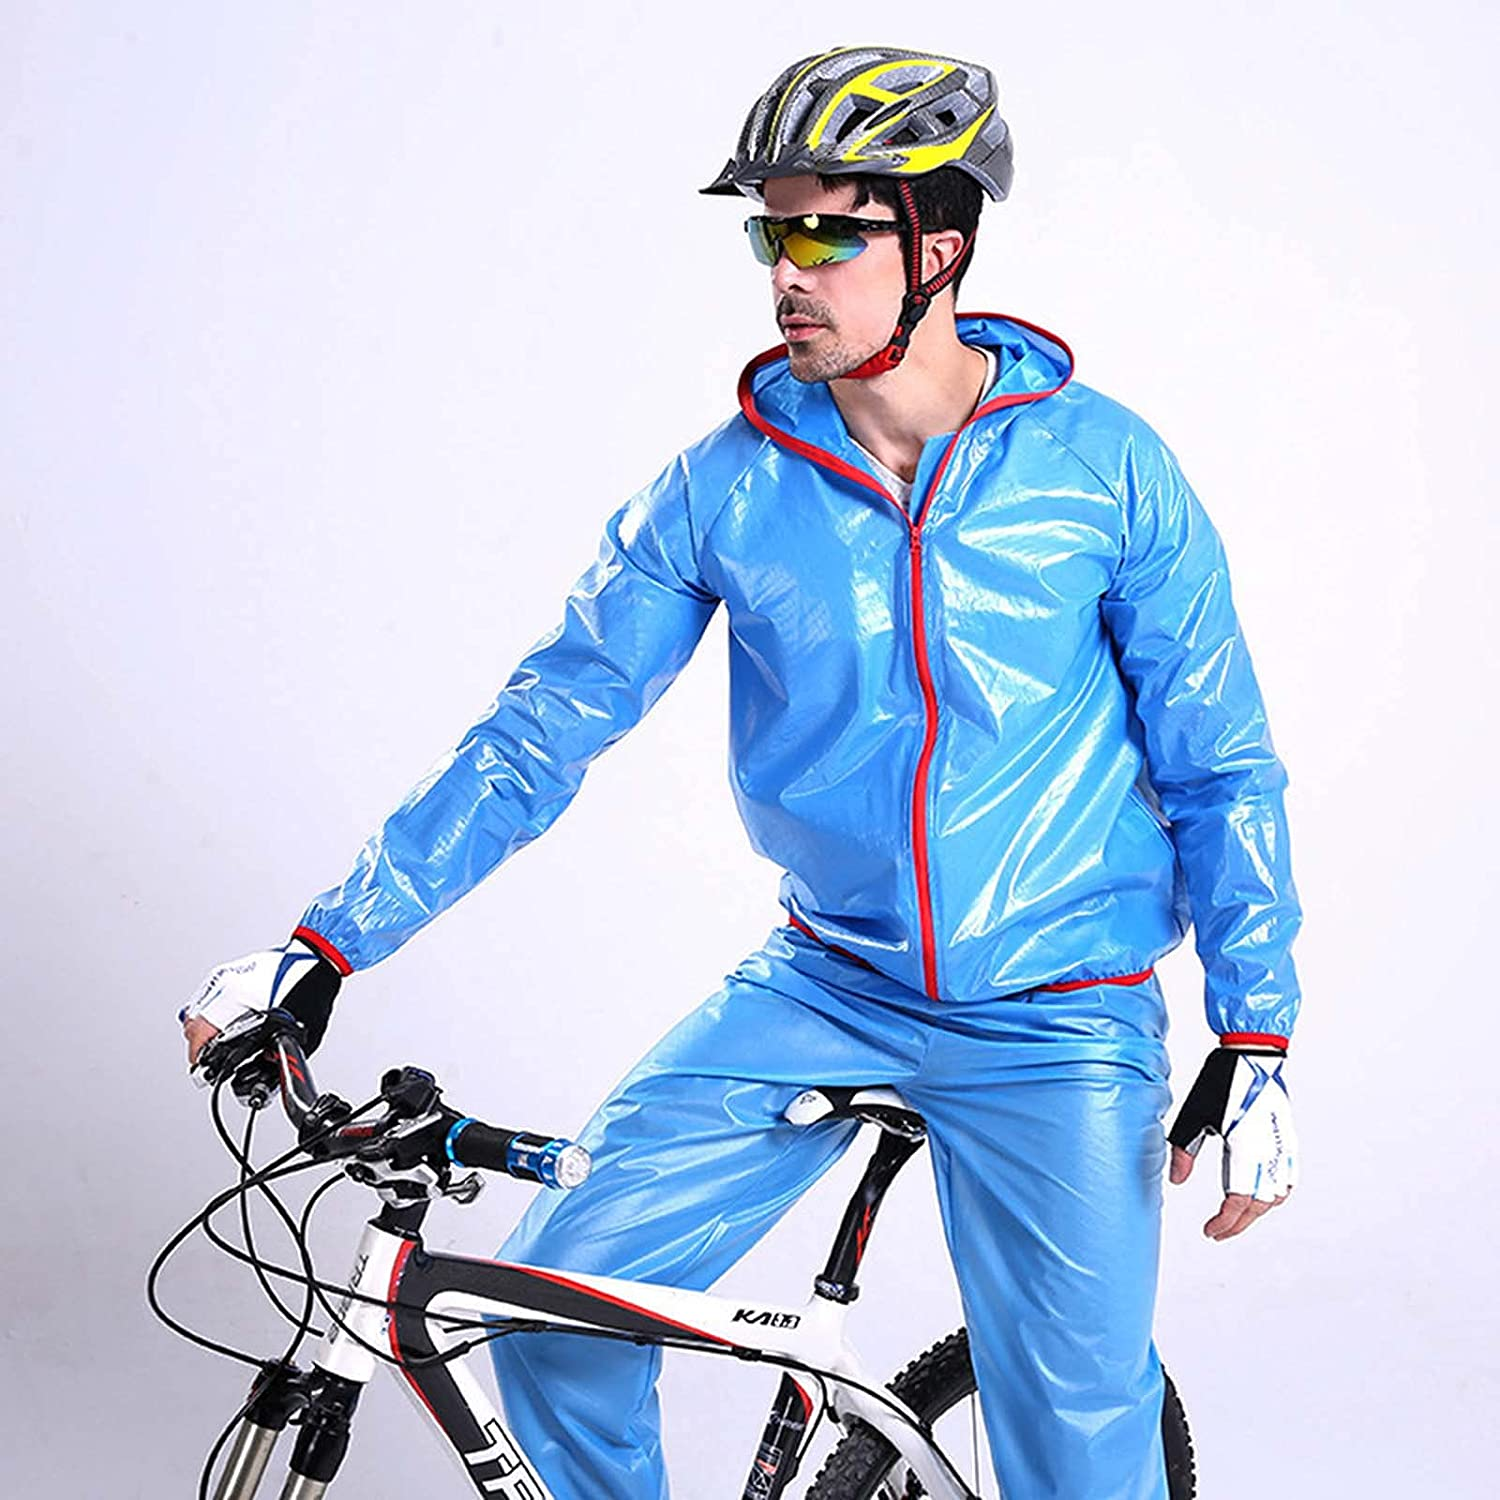 FHGH Men's Split Raincoat for Cycling, Portable Raincoat and Trousers Set, for Riding, Hiking and Traveling,B,Small